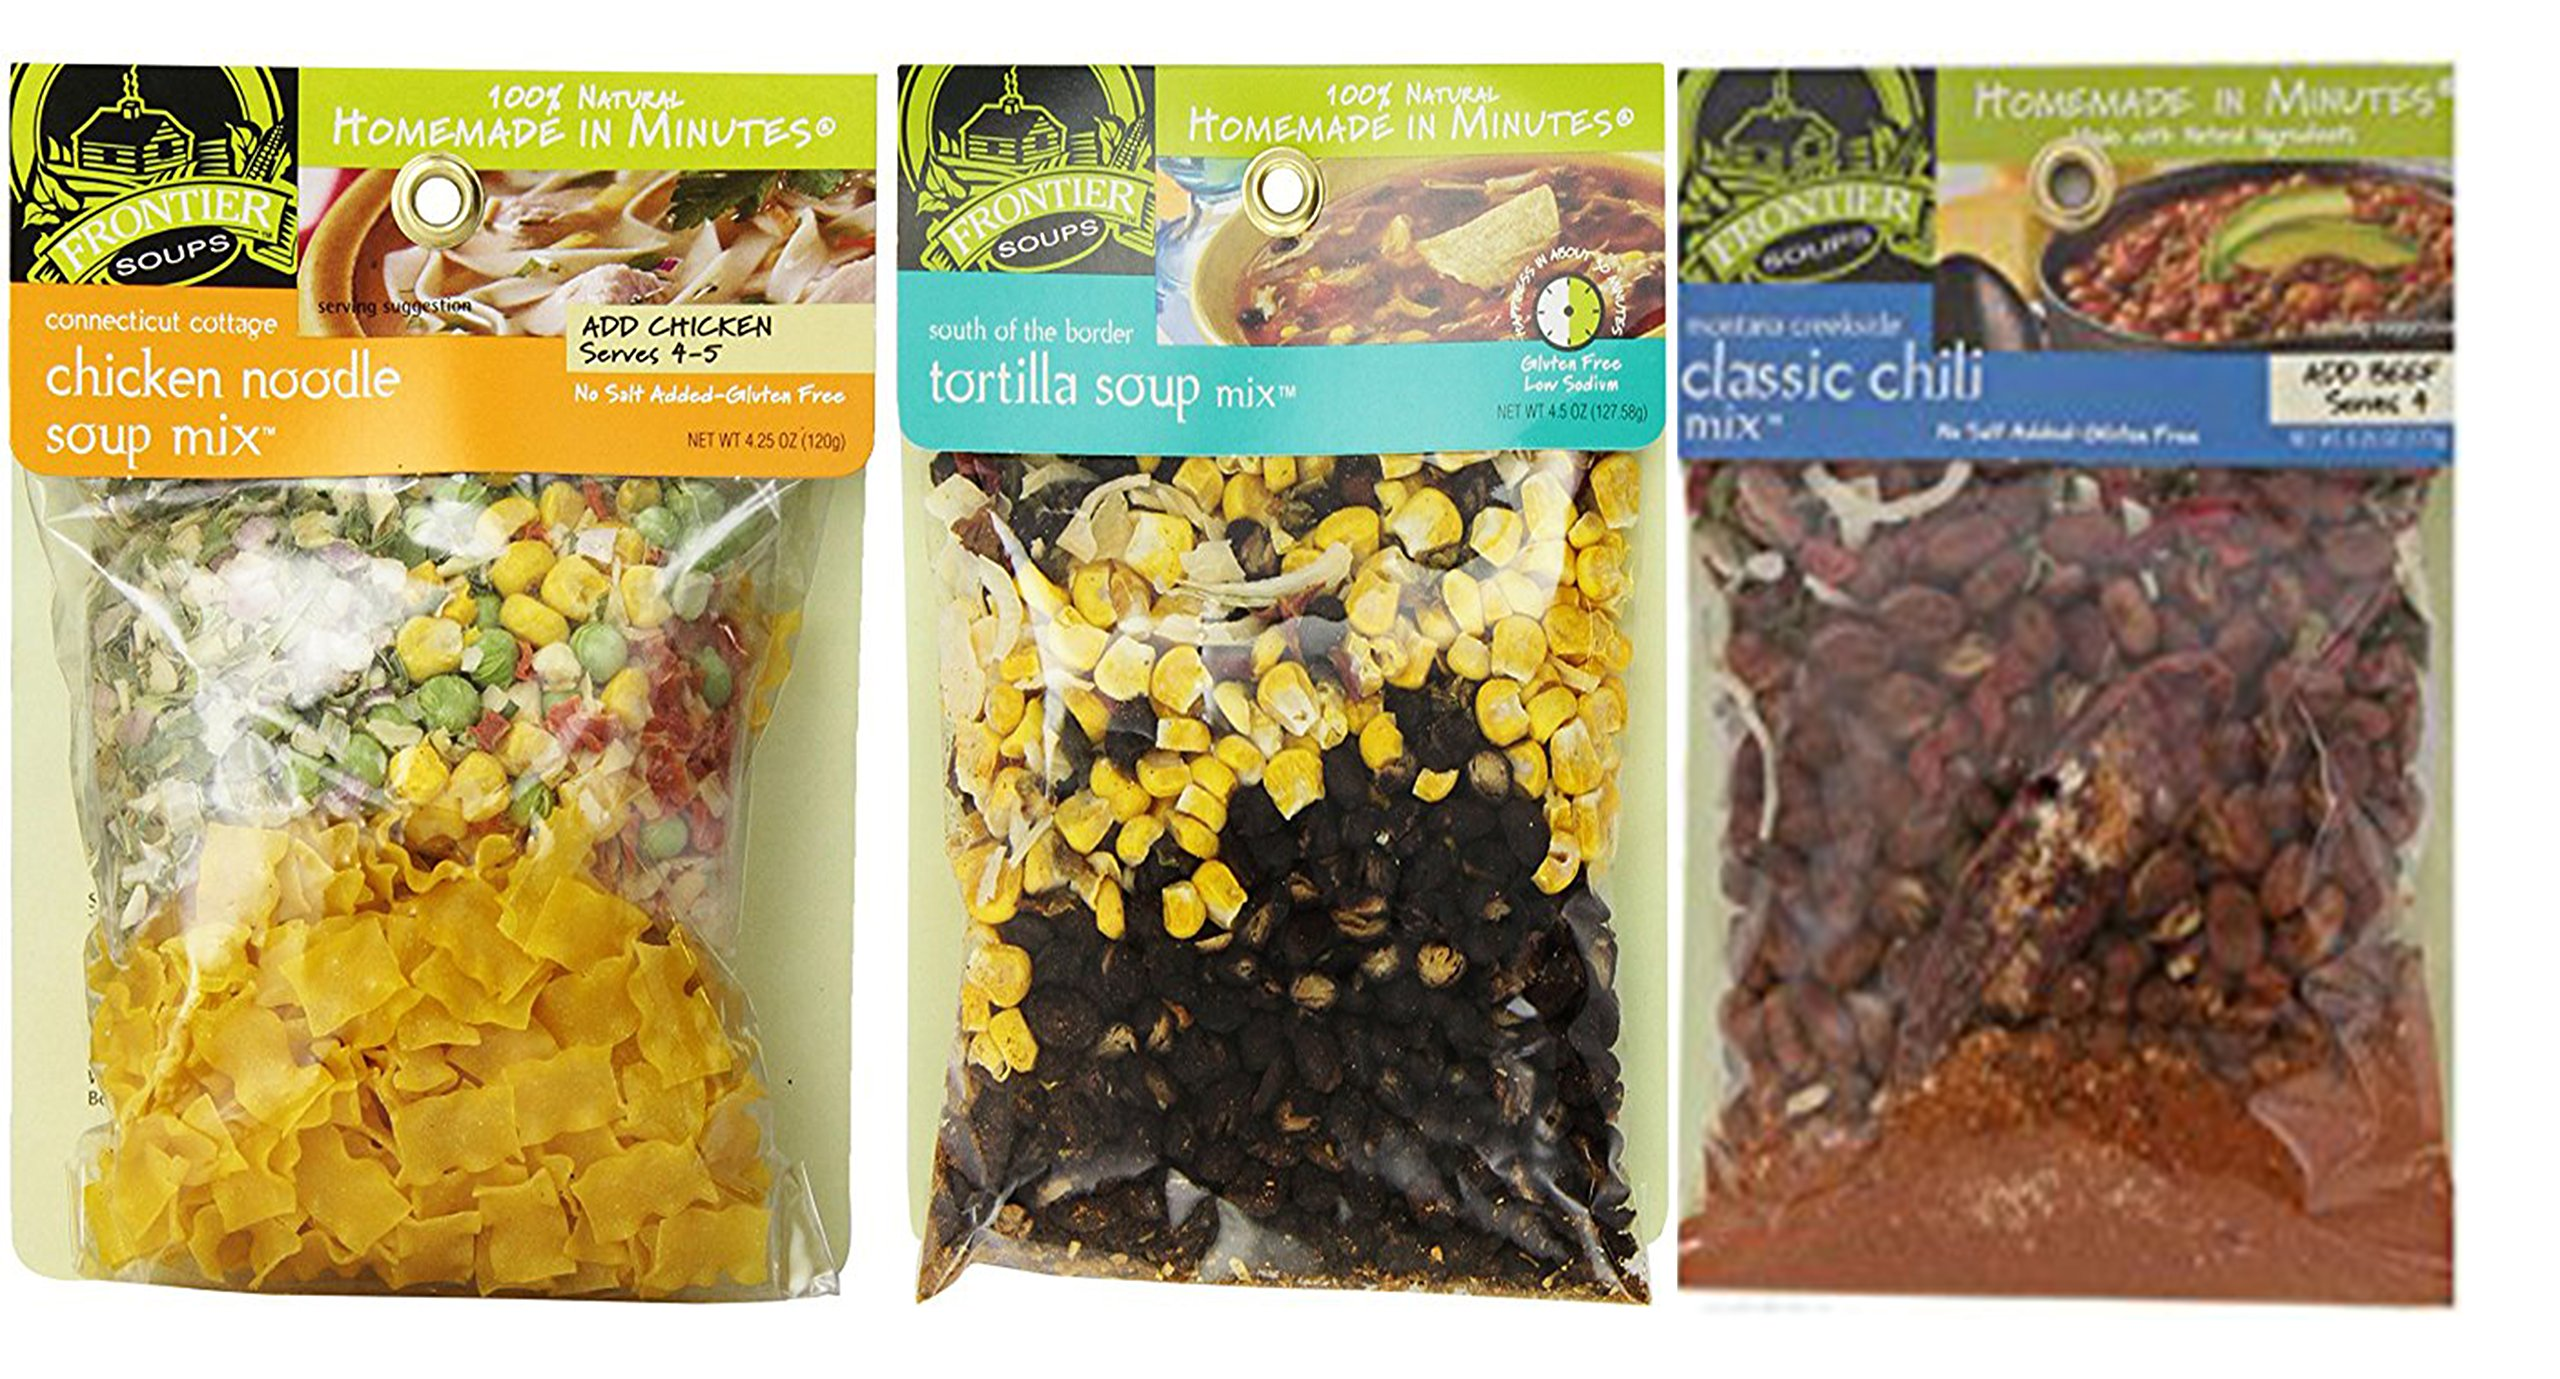 Frontier Soups Homemade In Minutes Soup Mix Comfort Food Bundle (1) Connecticut Cottage Chicken Noodle (1) South of The Border Tortilla (1) Montana Creekside Classic Chili